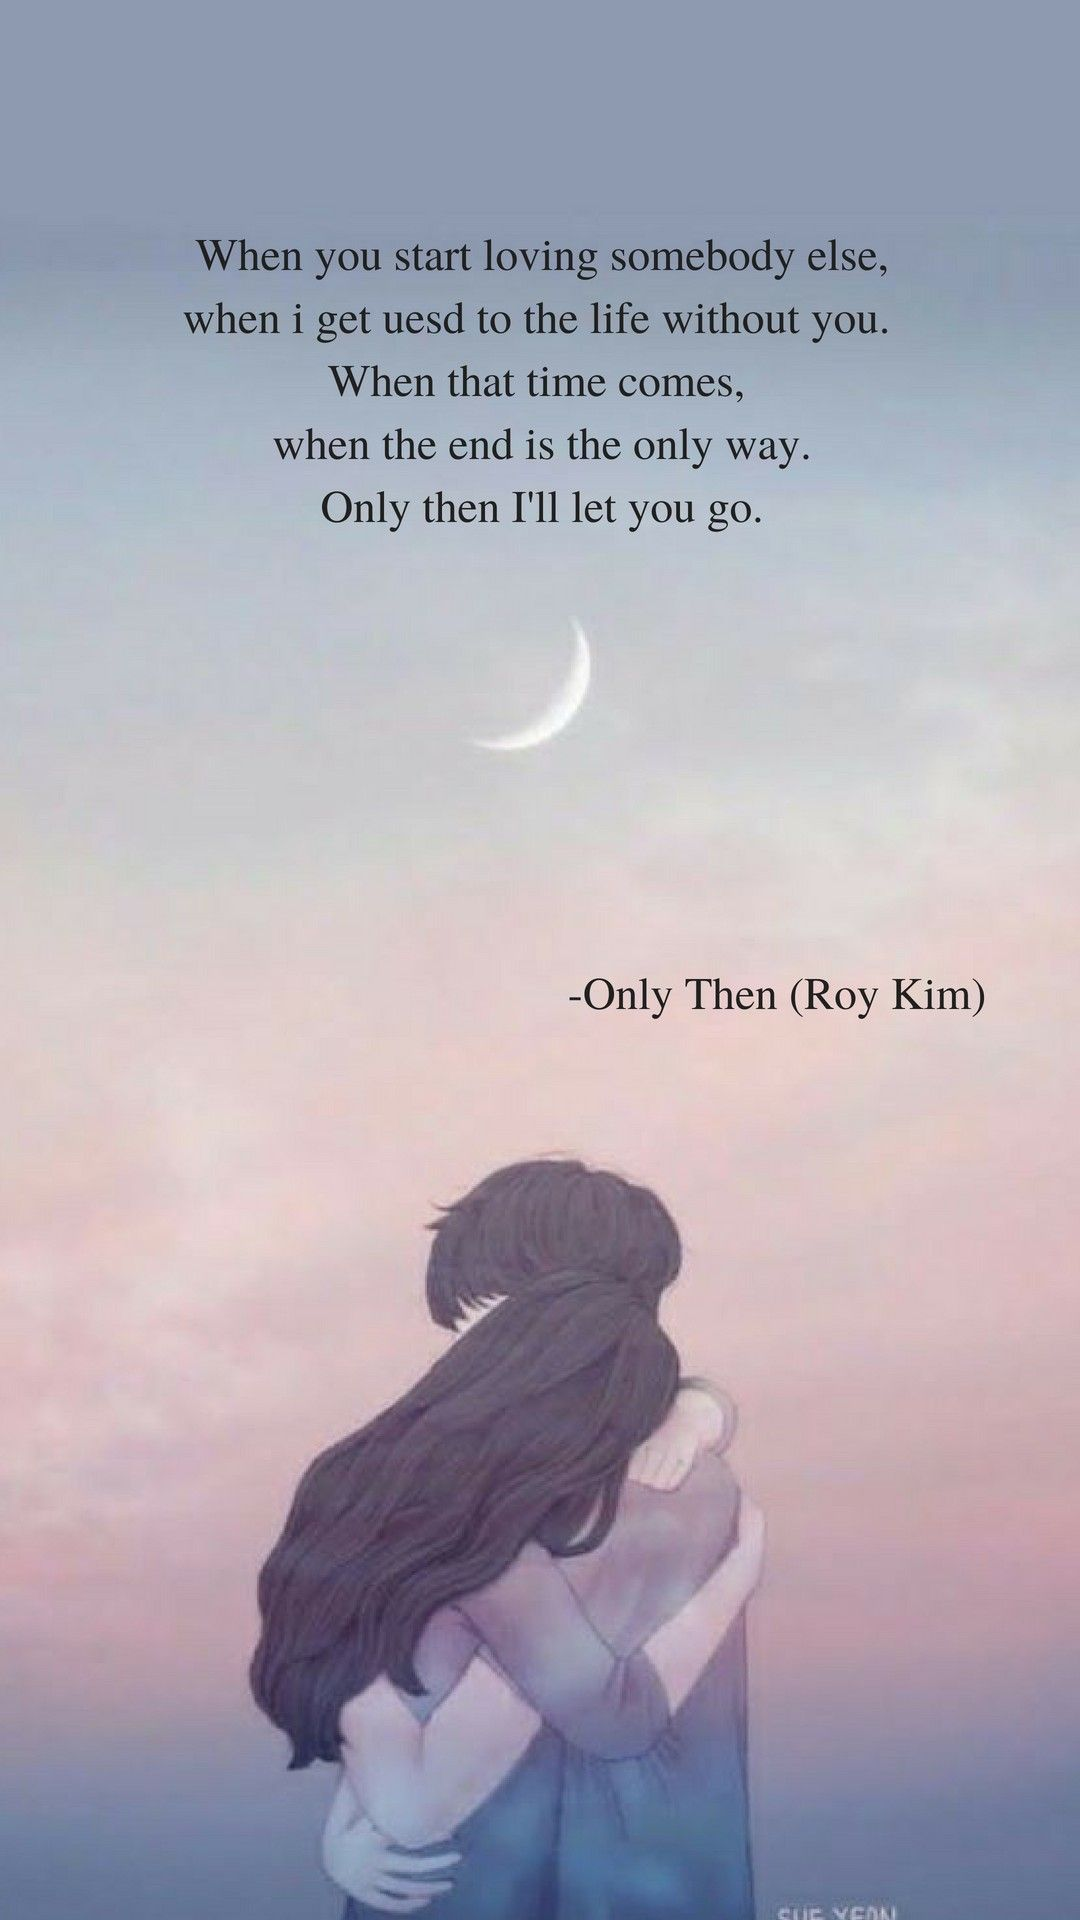 Only Then by Roy Kim Lyrics wallpaper kookie did a cover on